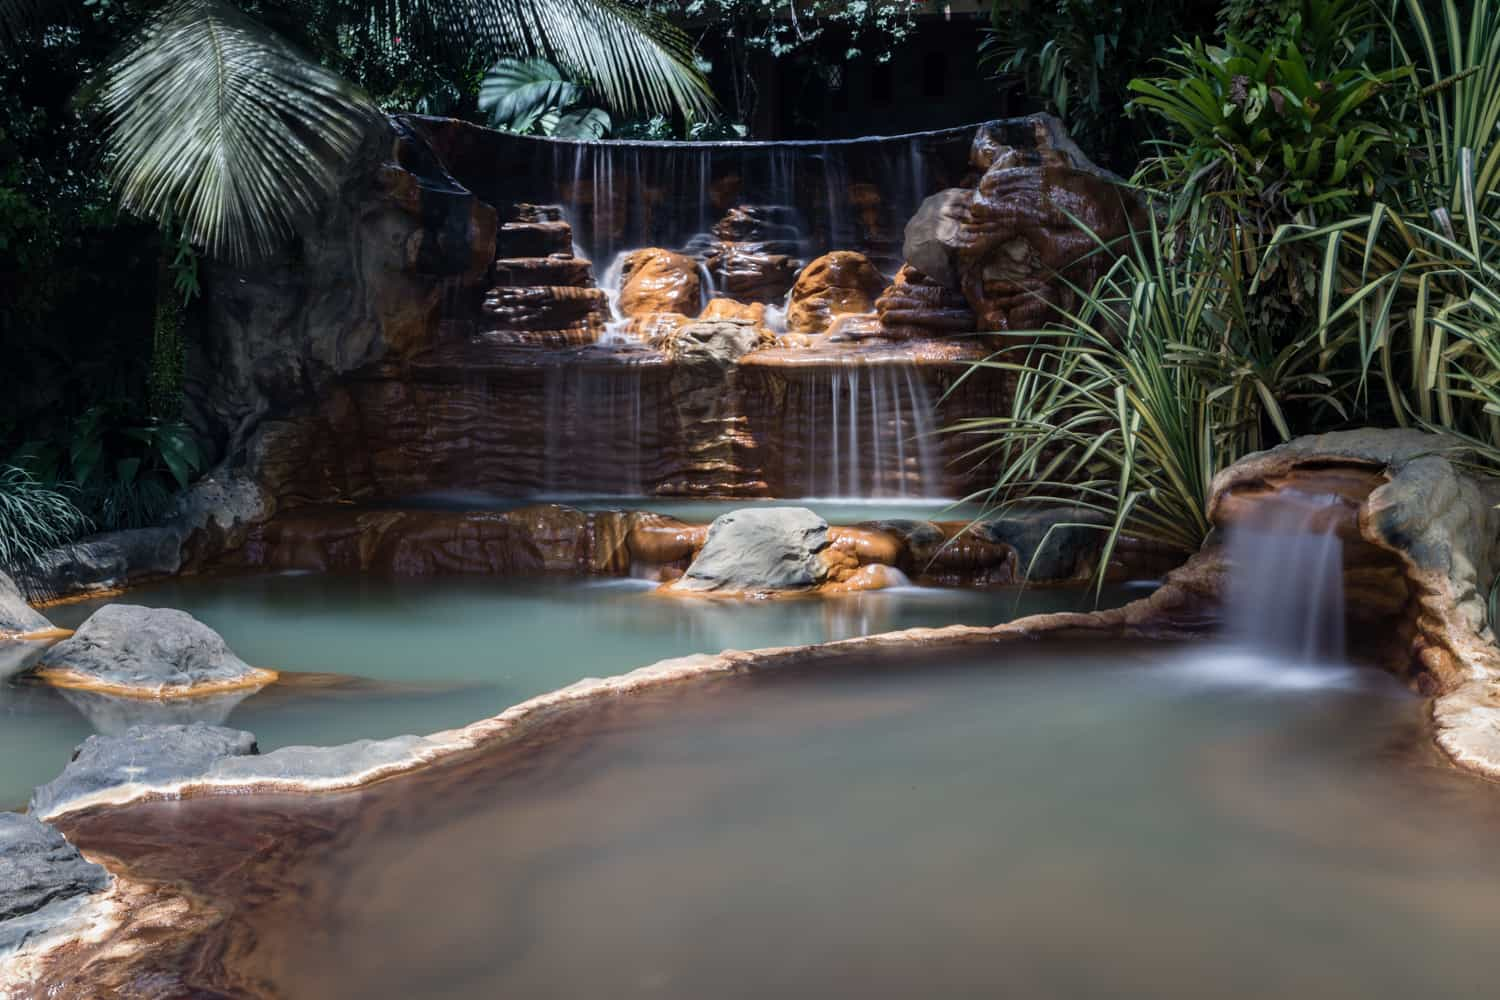 Cascading waterfalls in one of the many thermal pools at The Springs Resort & Spa in Costa Rica.